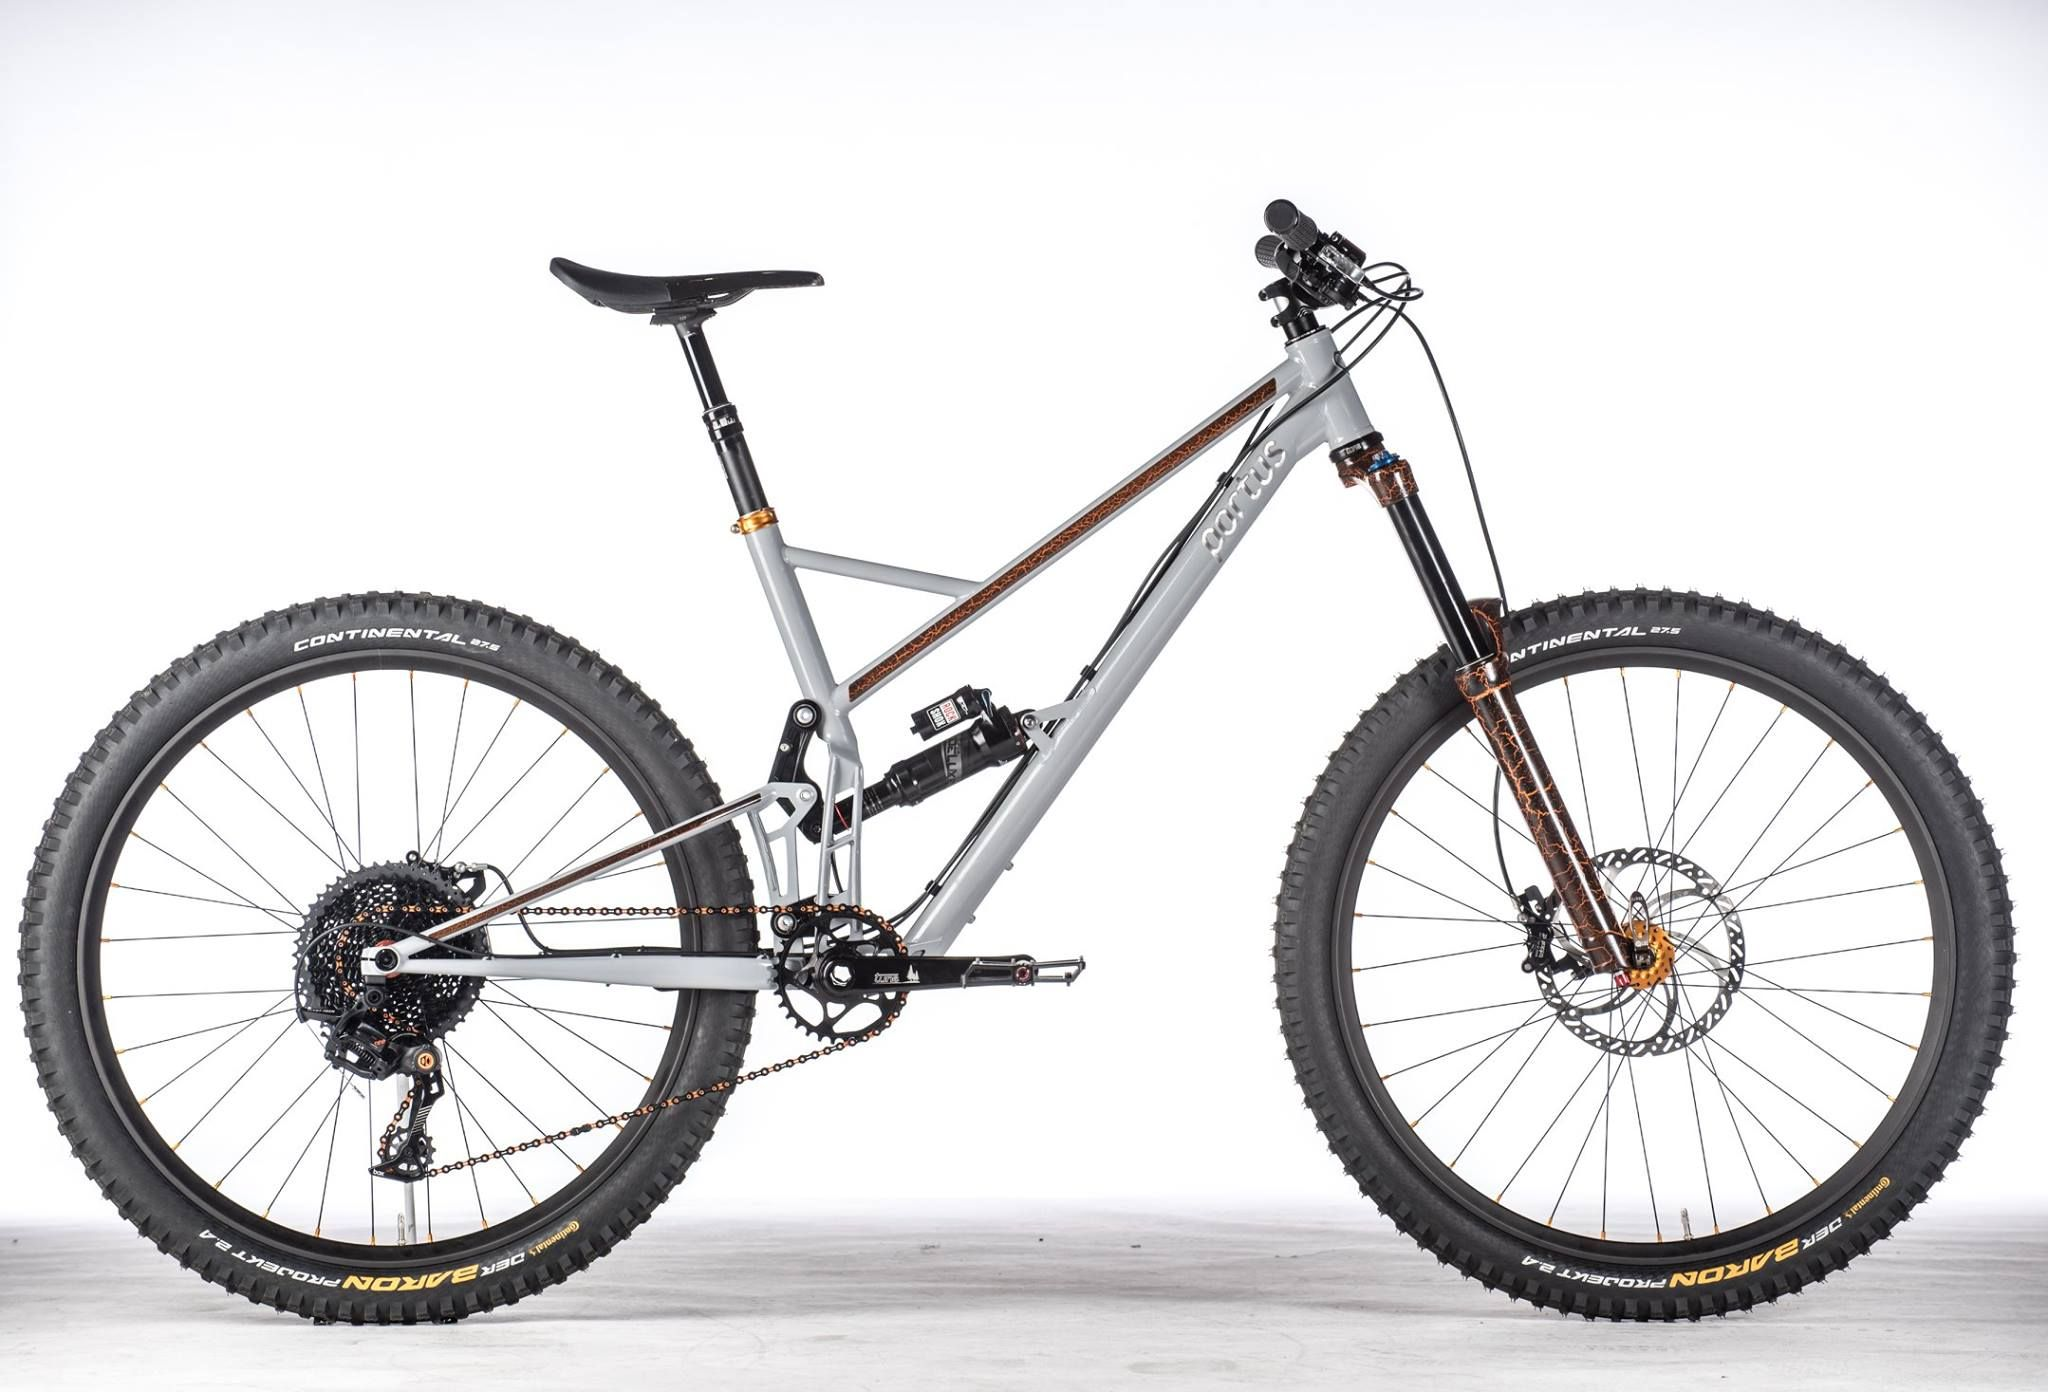 04e5d278f13 The new wave of steel frame full suspension bikes - MBR | bici pure ...